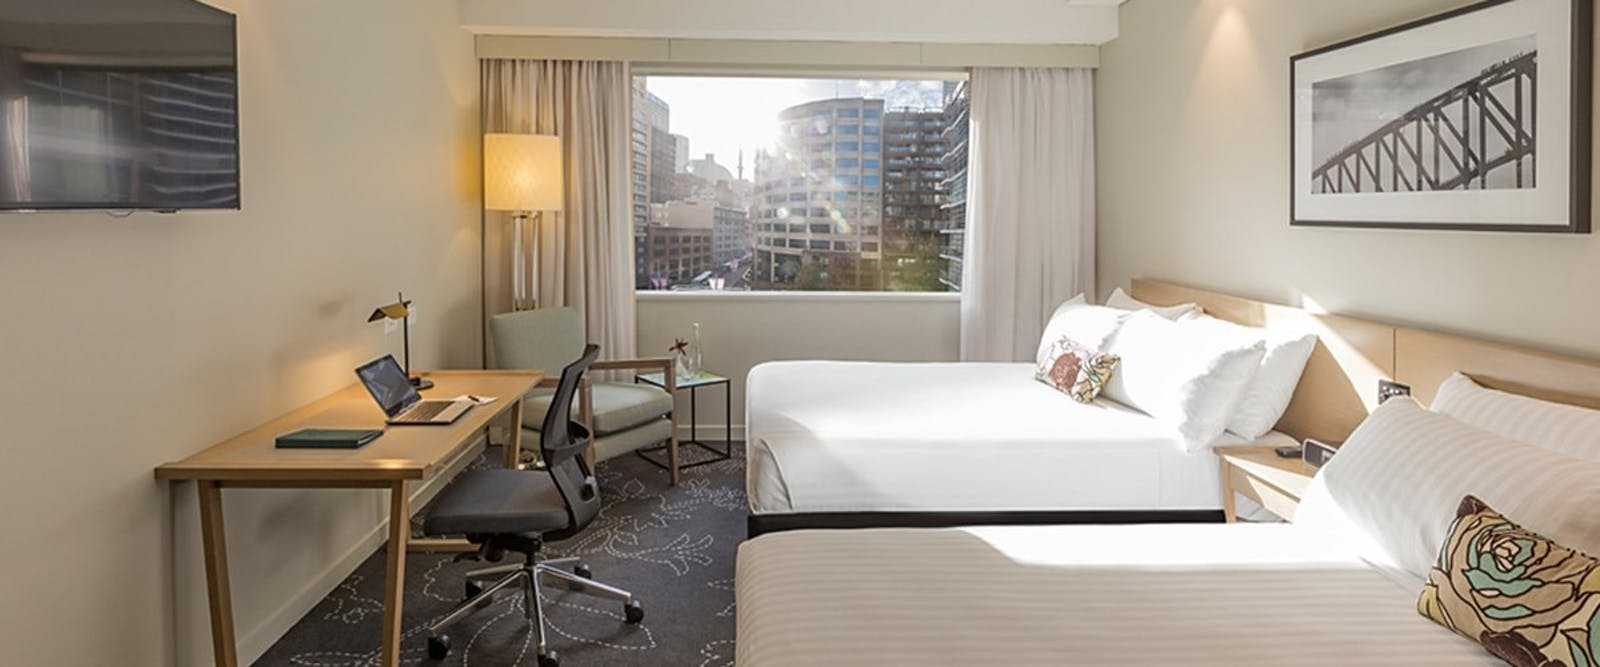 Superior twin room at Parkroyal Darling Harbour, Australia